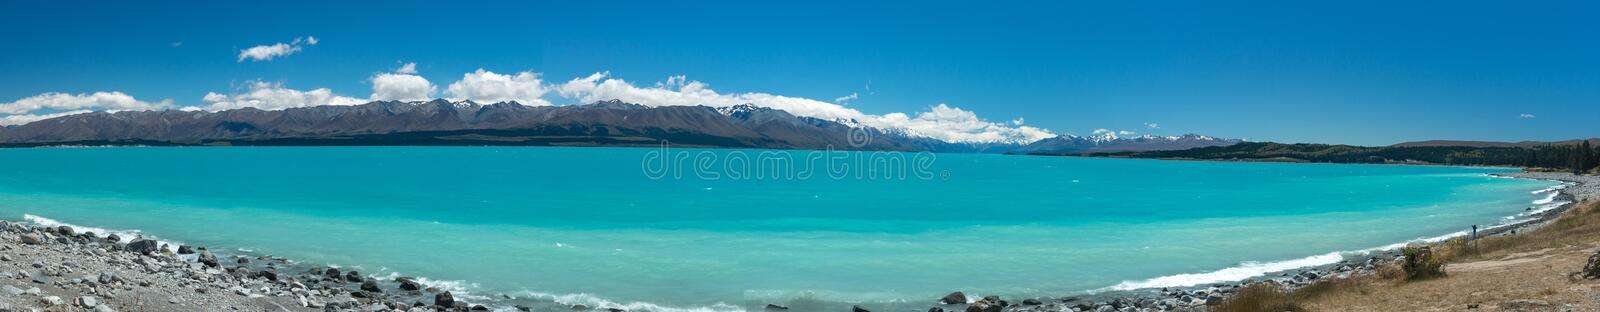 Bright blue waters of Lake Pukaki, a major tourist attraction on New Zealand`s South Island royalty free stock photo